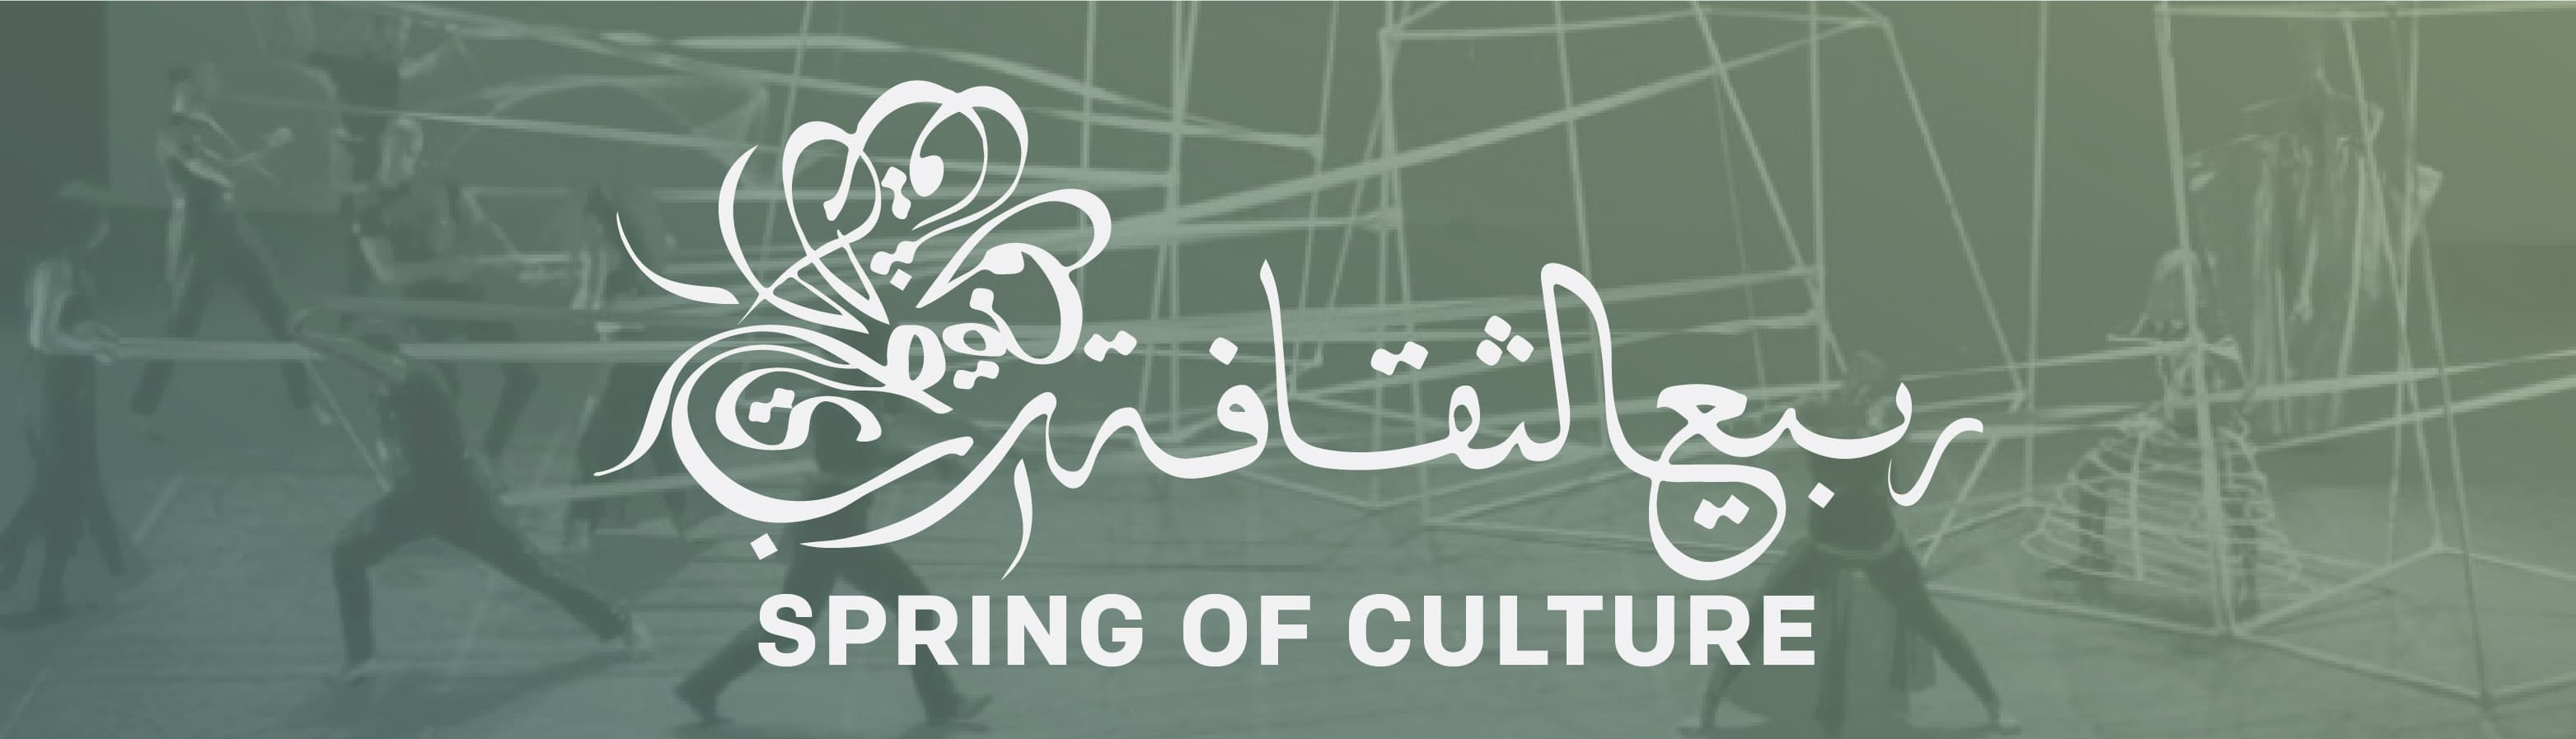 The Spring of Culture Festival